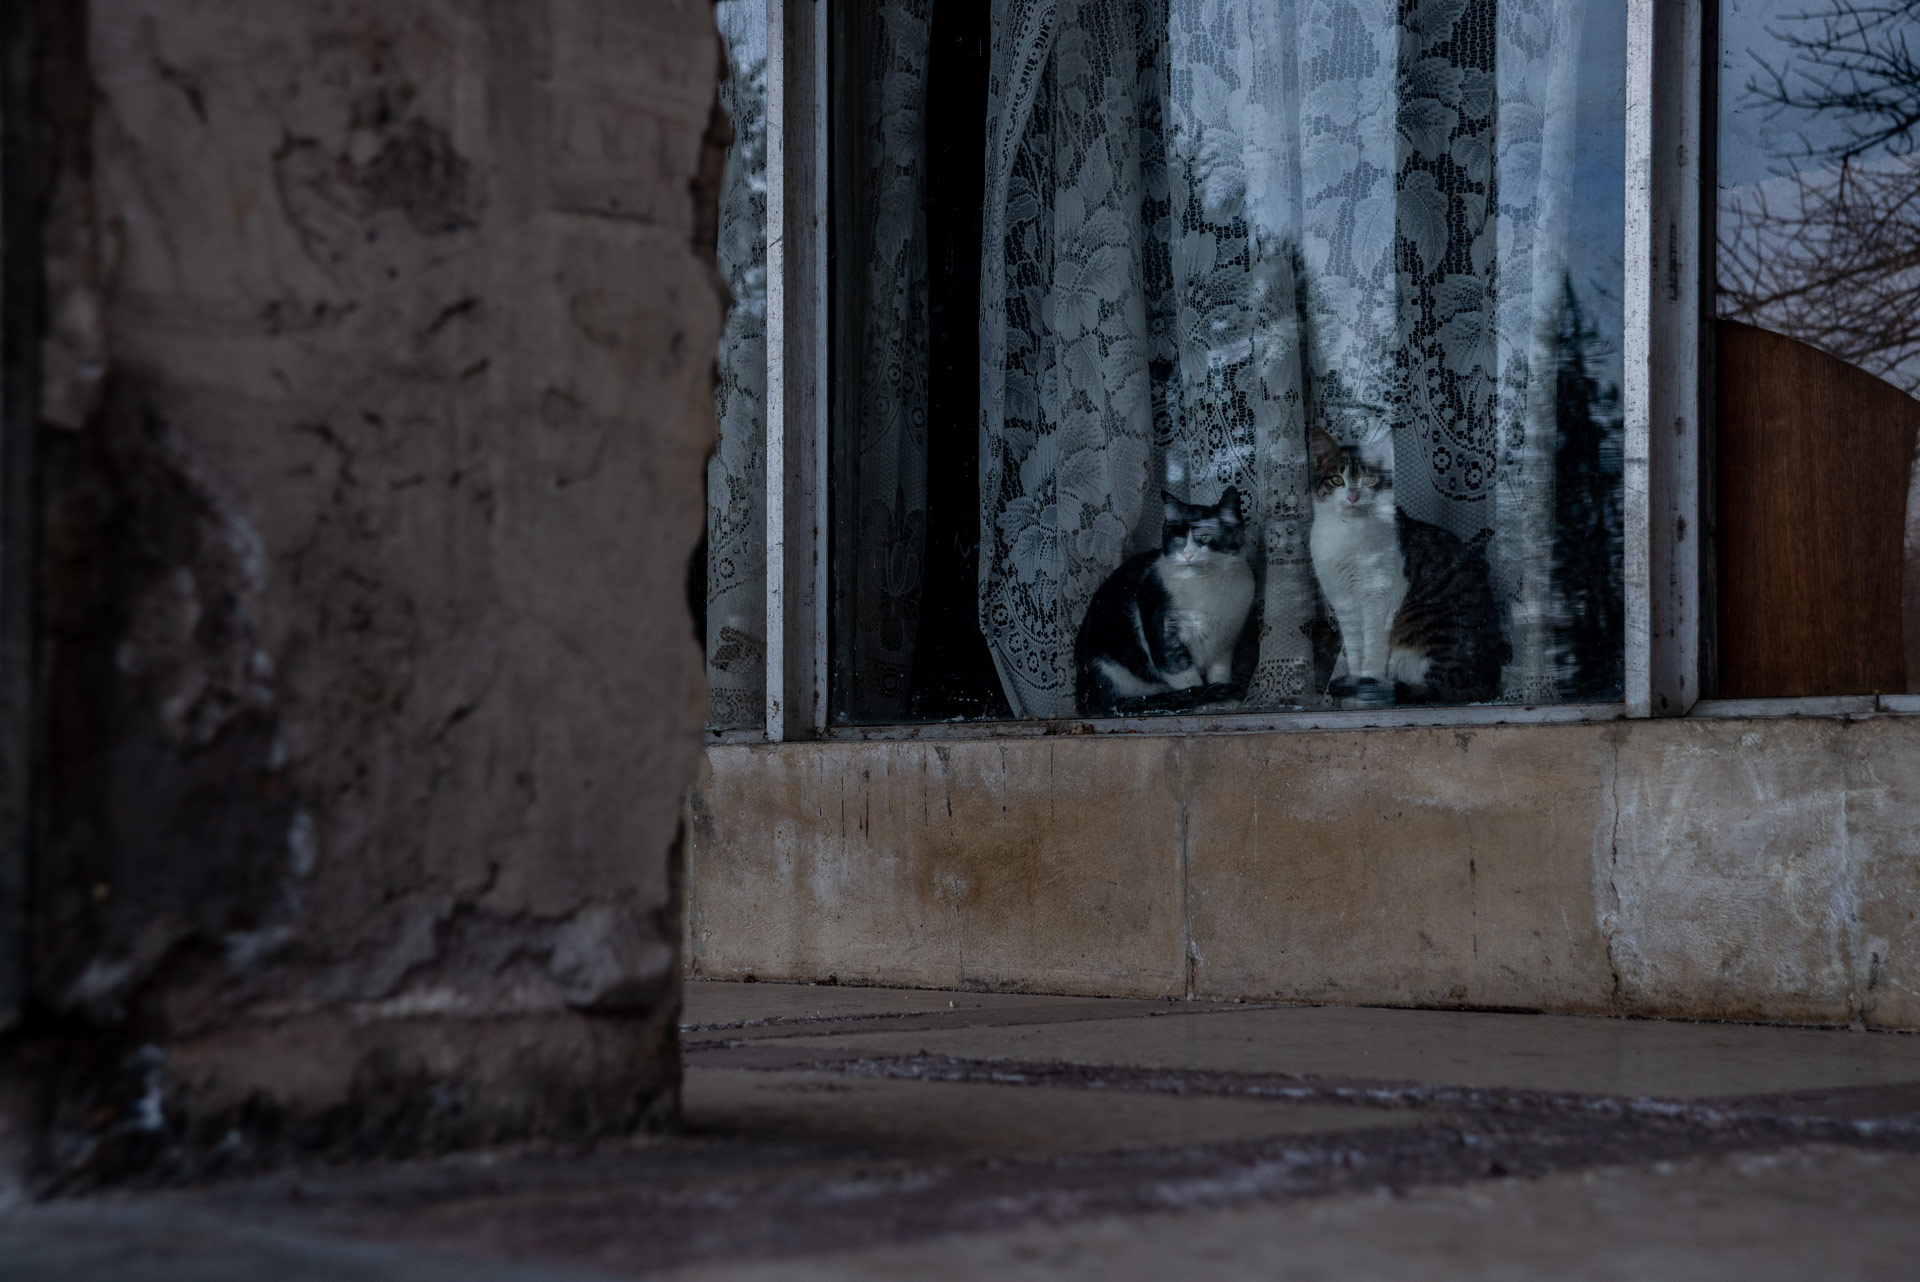 Two cats looking melancholically outside of the window in an abandoned sanatorium.